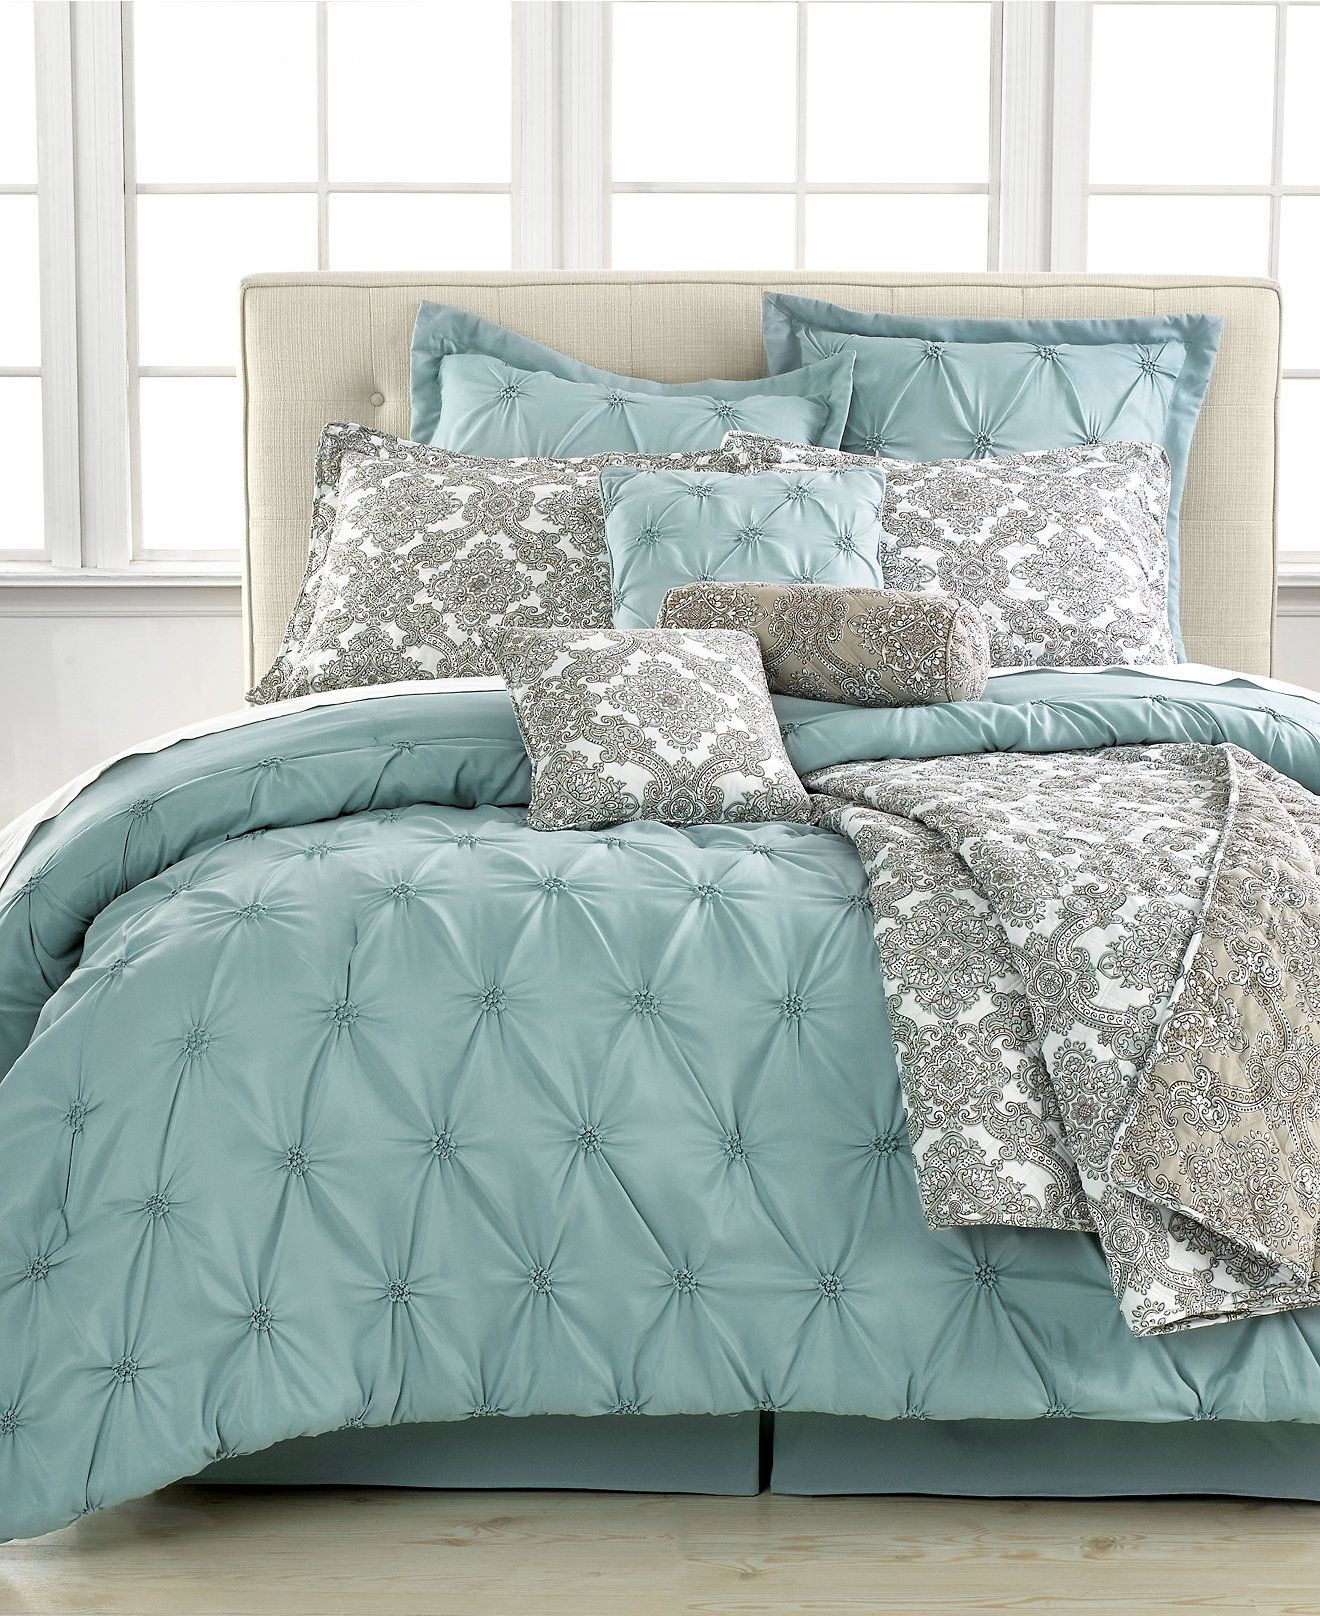 bedding teal piece adana comforter overstock product today free home chic shipping bath set